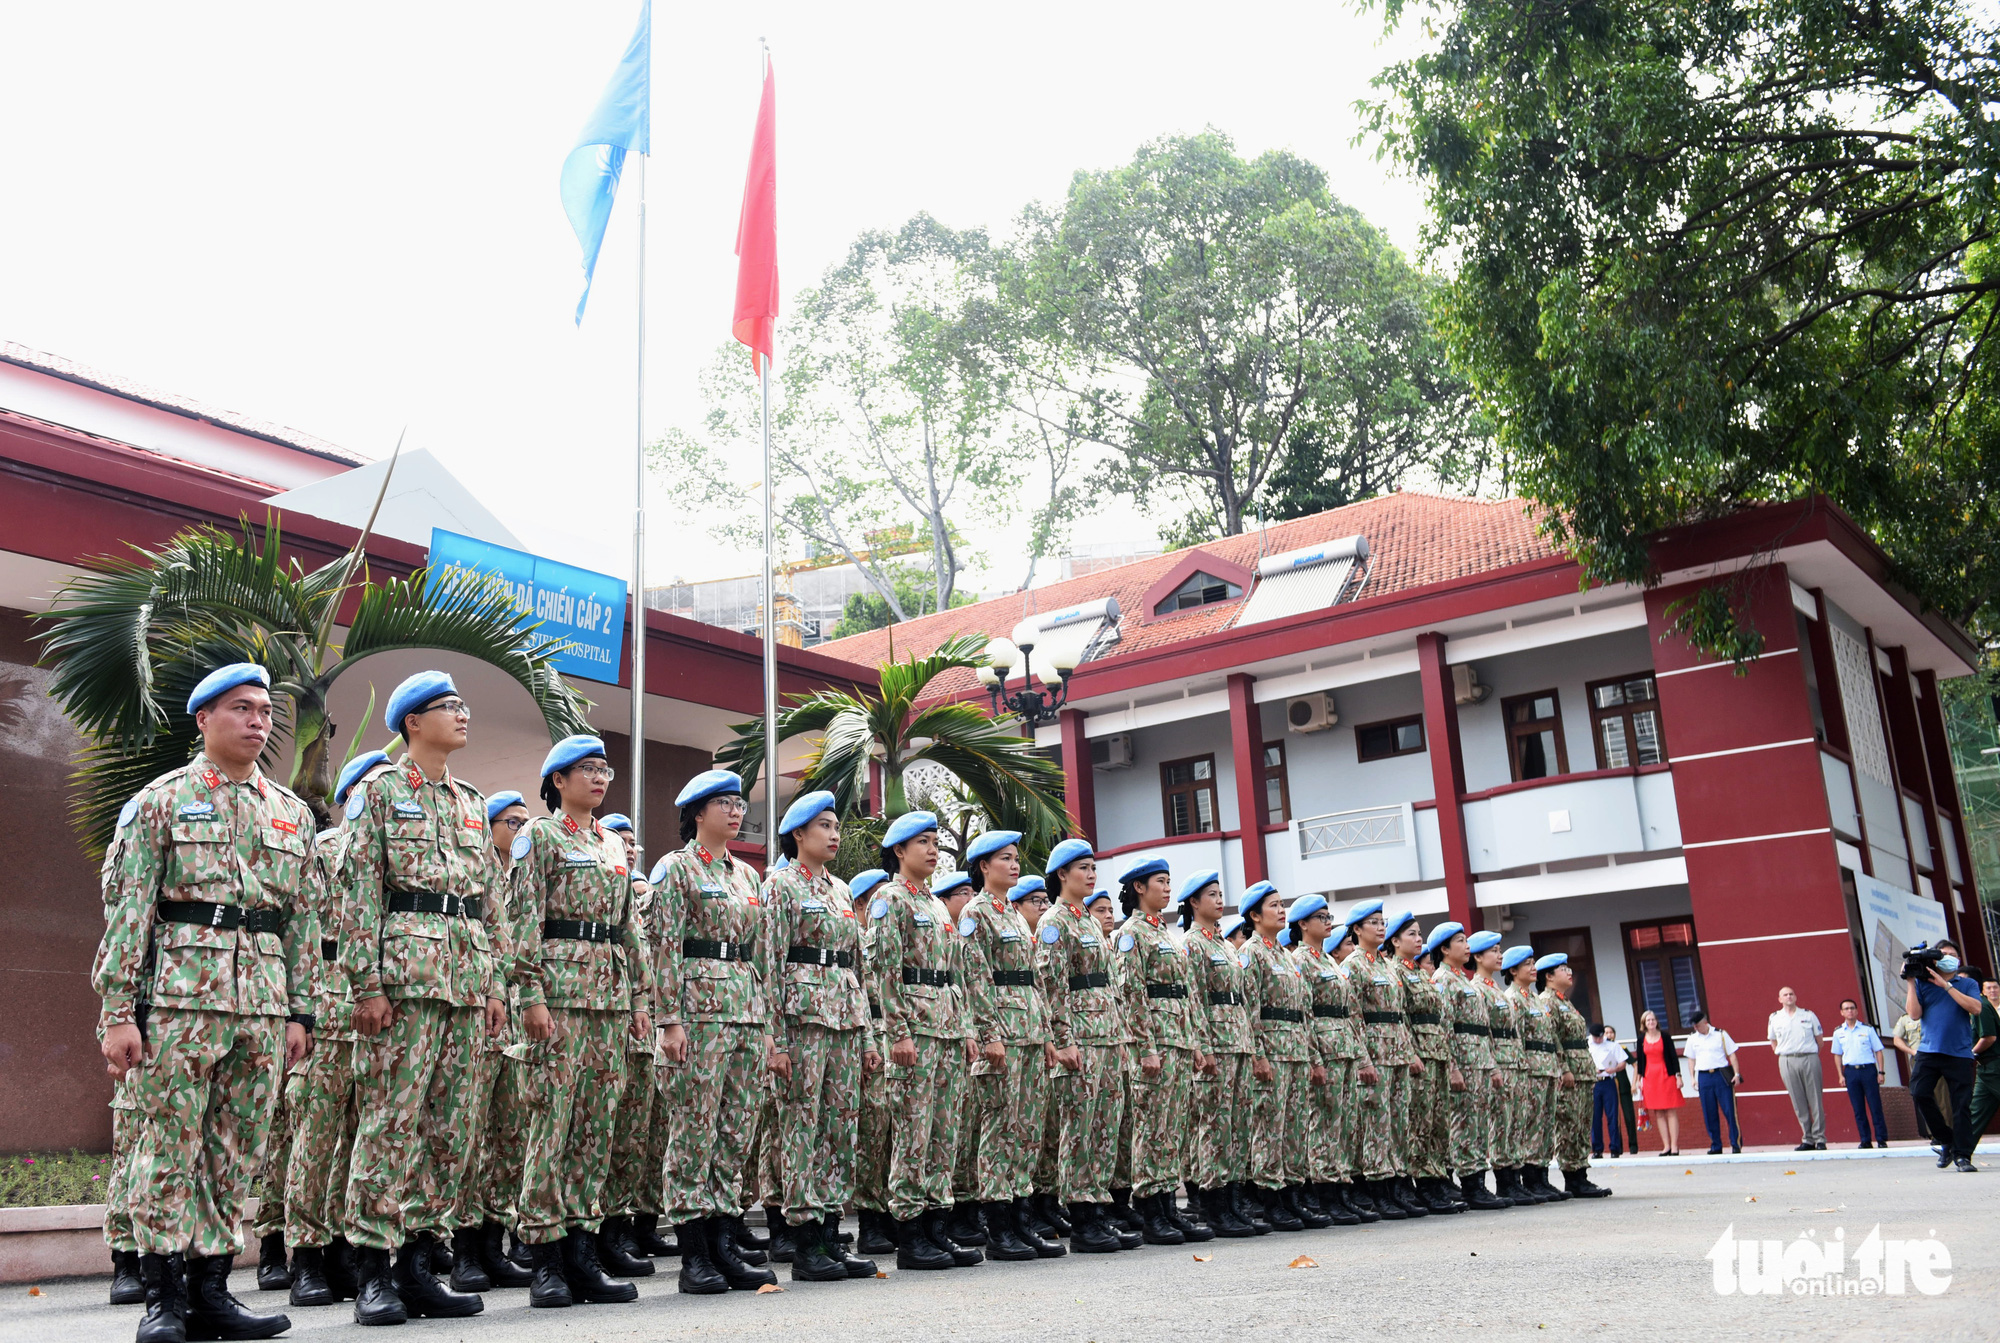 Staff members of Level-2 Field Hospital No.3 are pictured prior to their final training phase in Ho Chi Minh City, December 23, 2020. Photo: Duyen Phan / Tuoi Tre